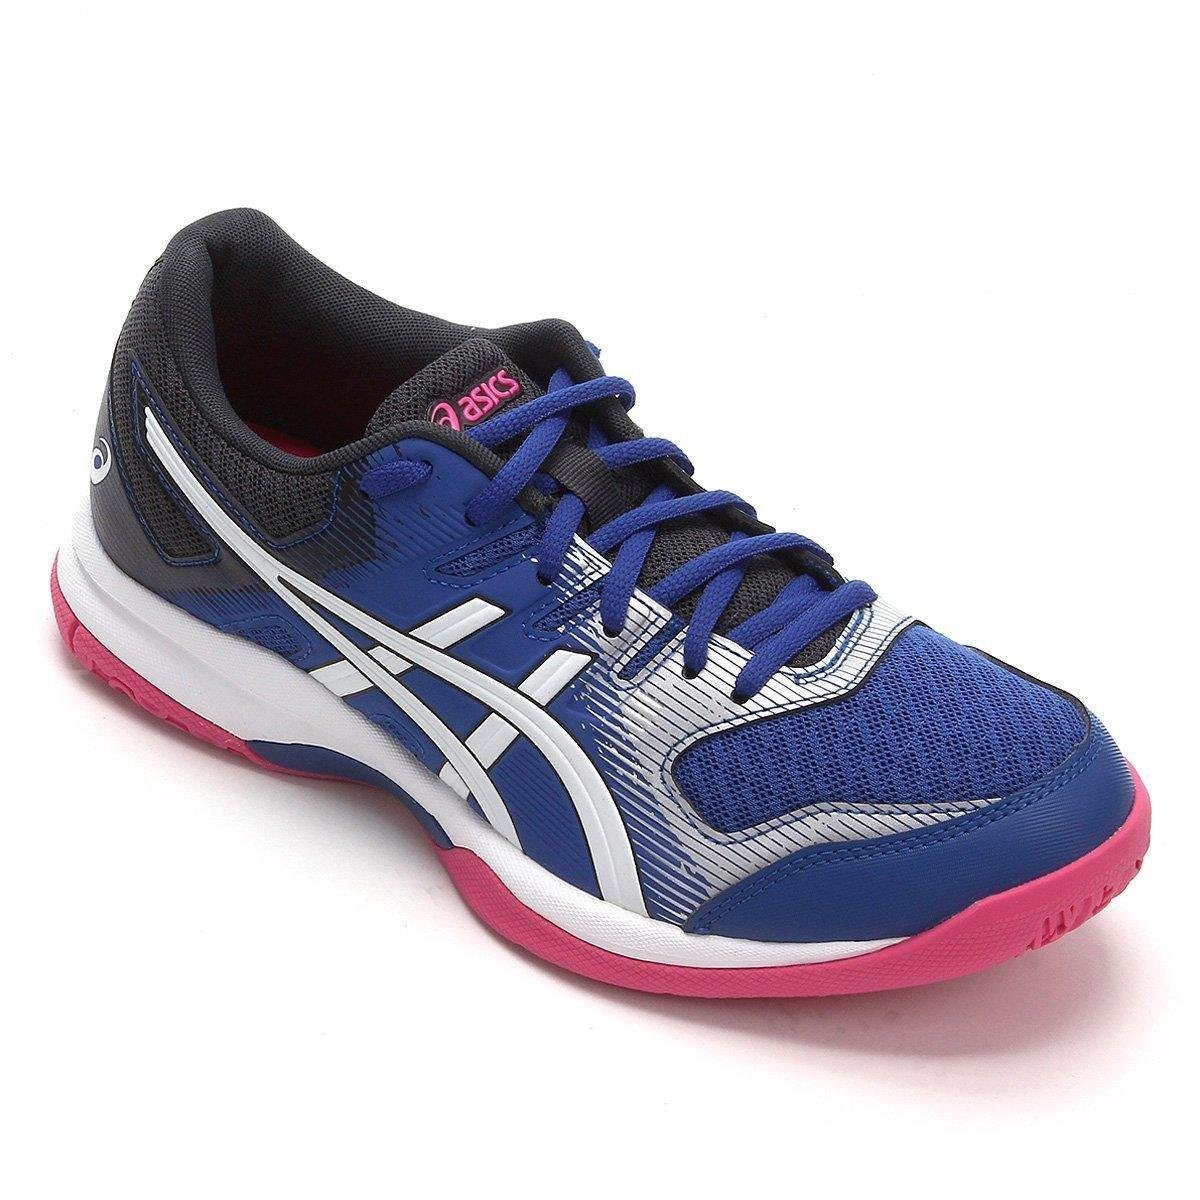 excellent quality big discount real quality Tênis Asics Gel-Rocket 9 Feminino - Azul e Branco